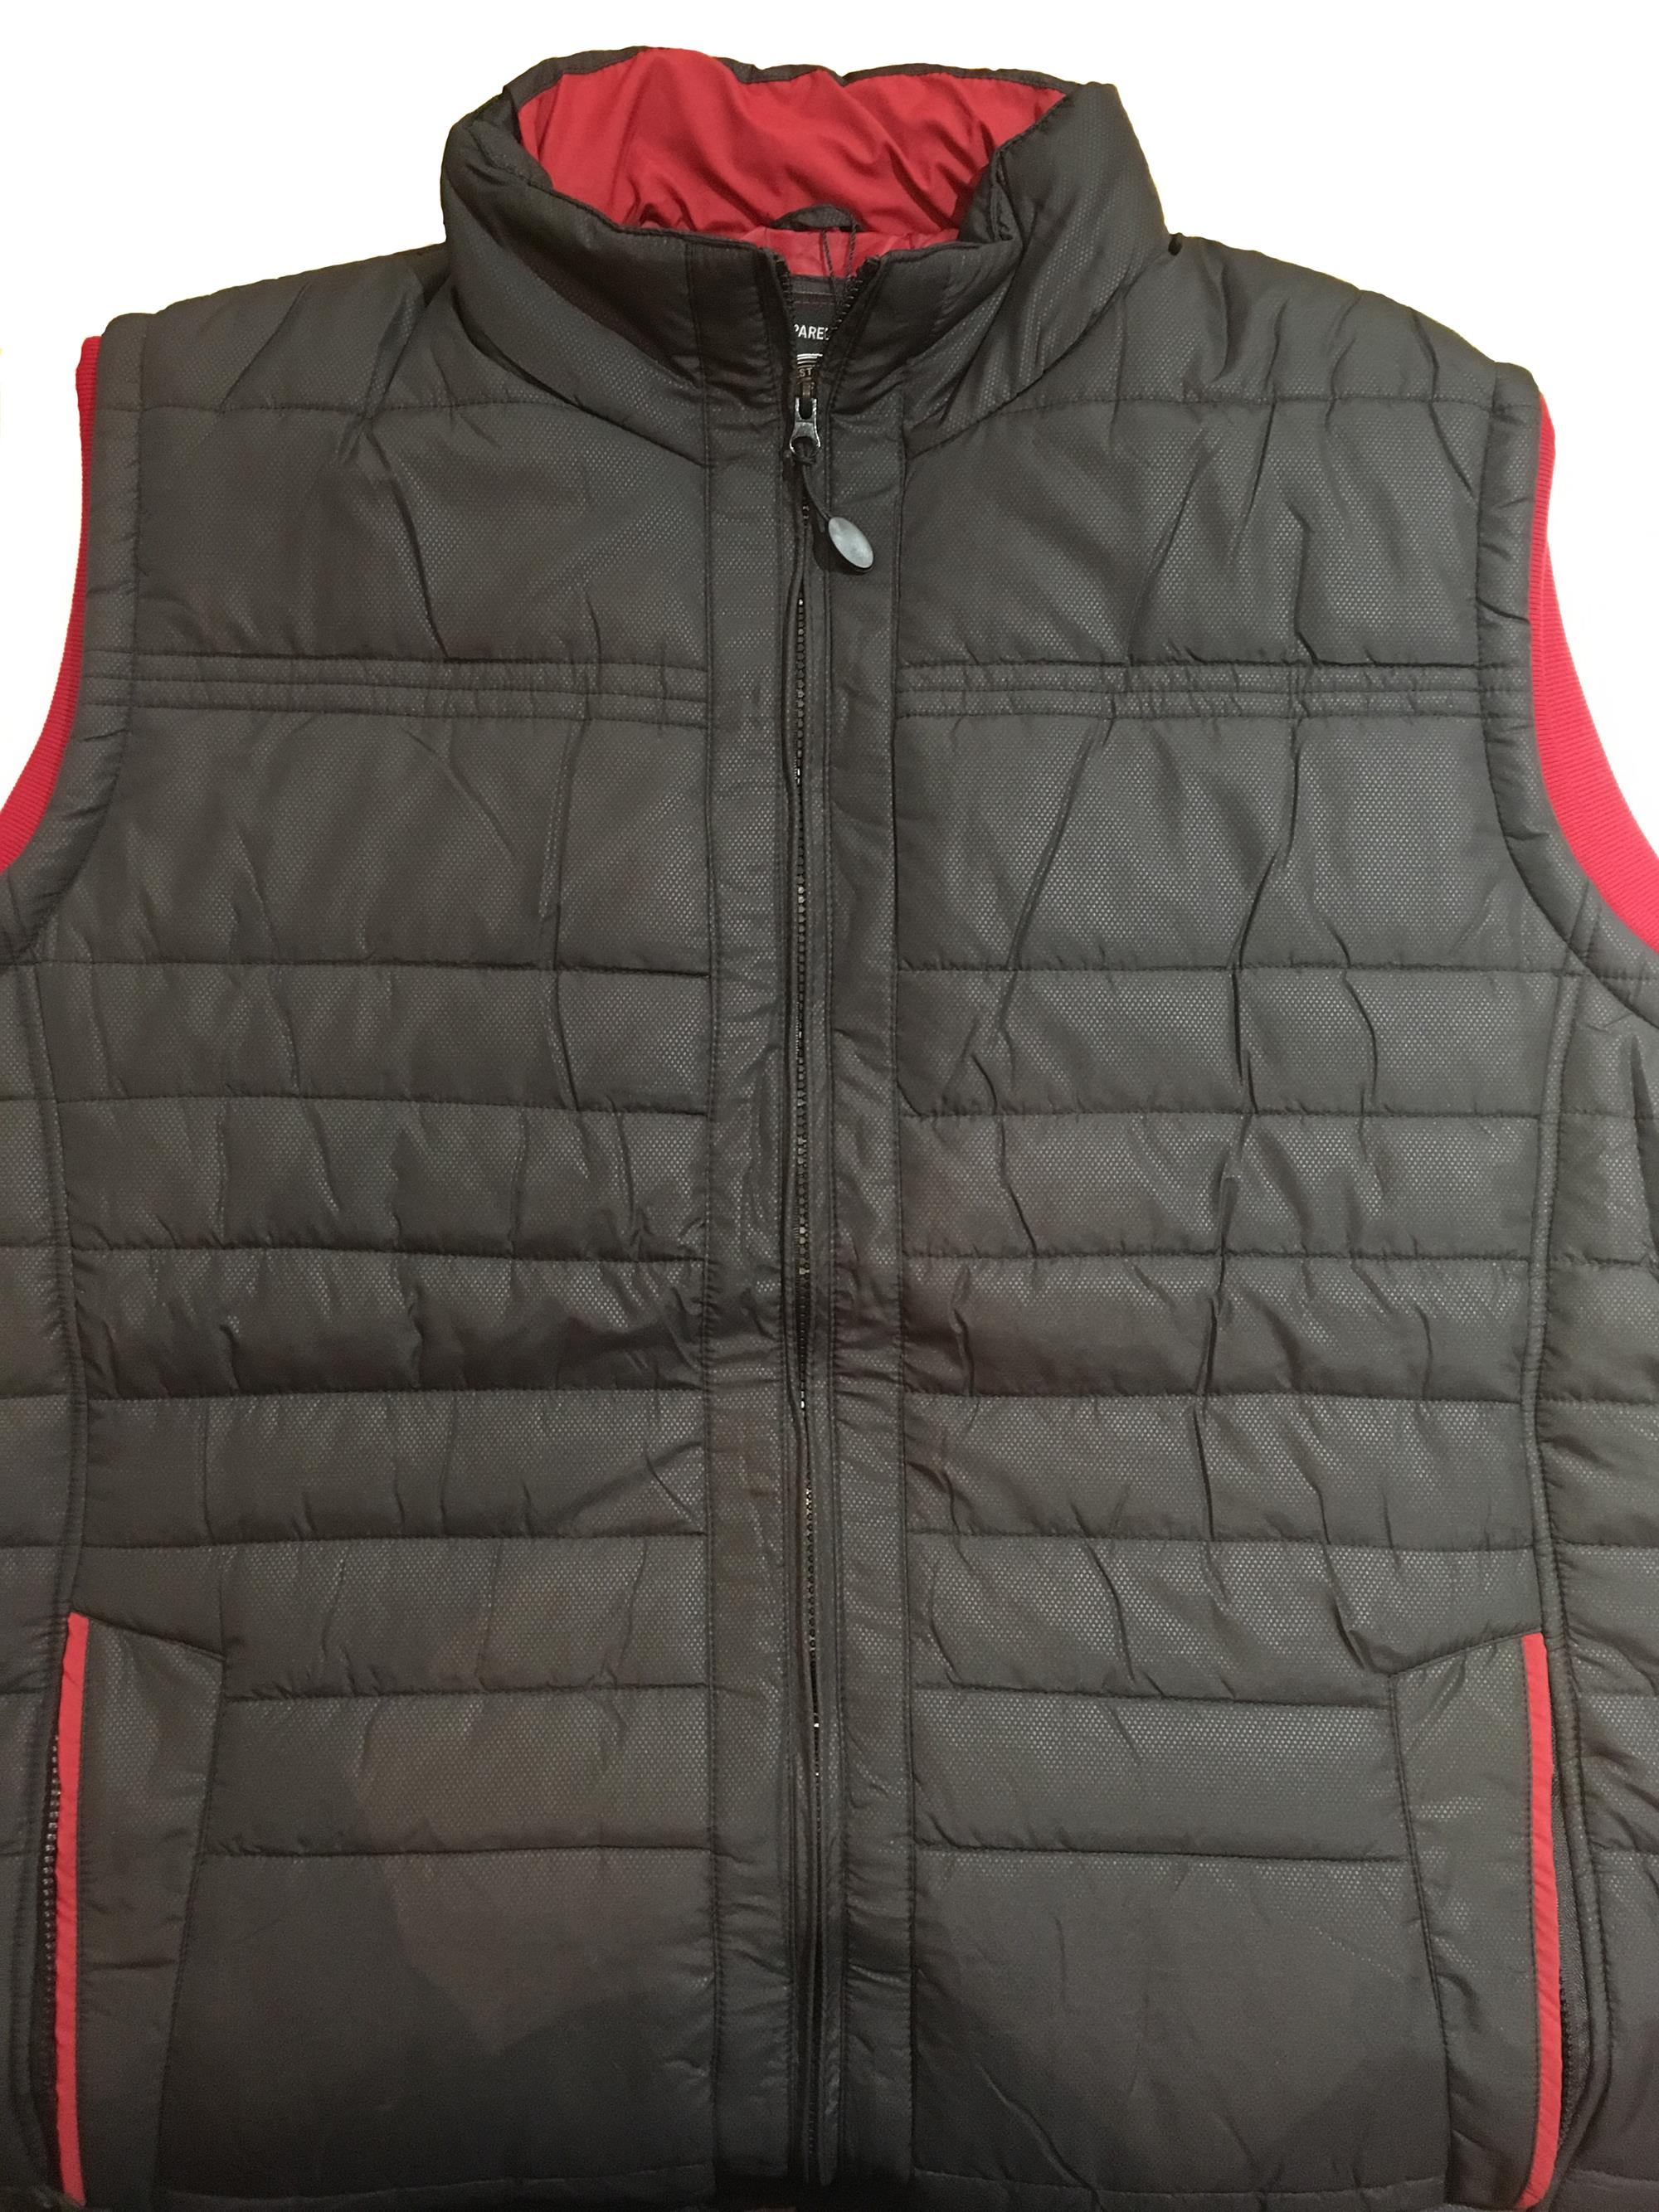 kam quilted body warmer (black)